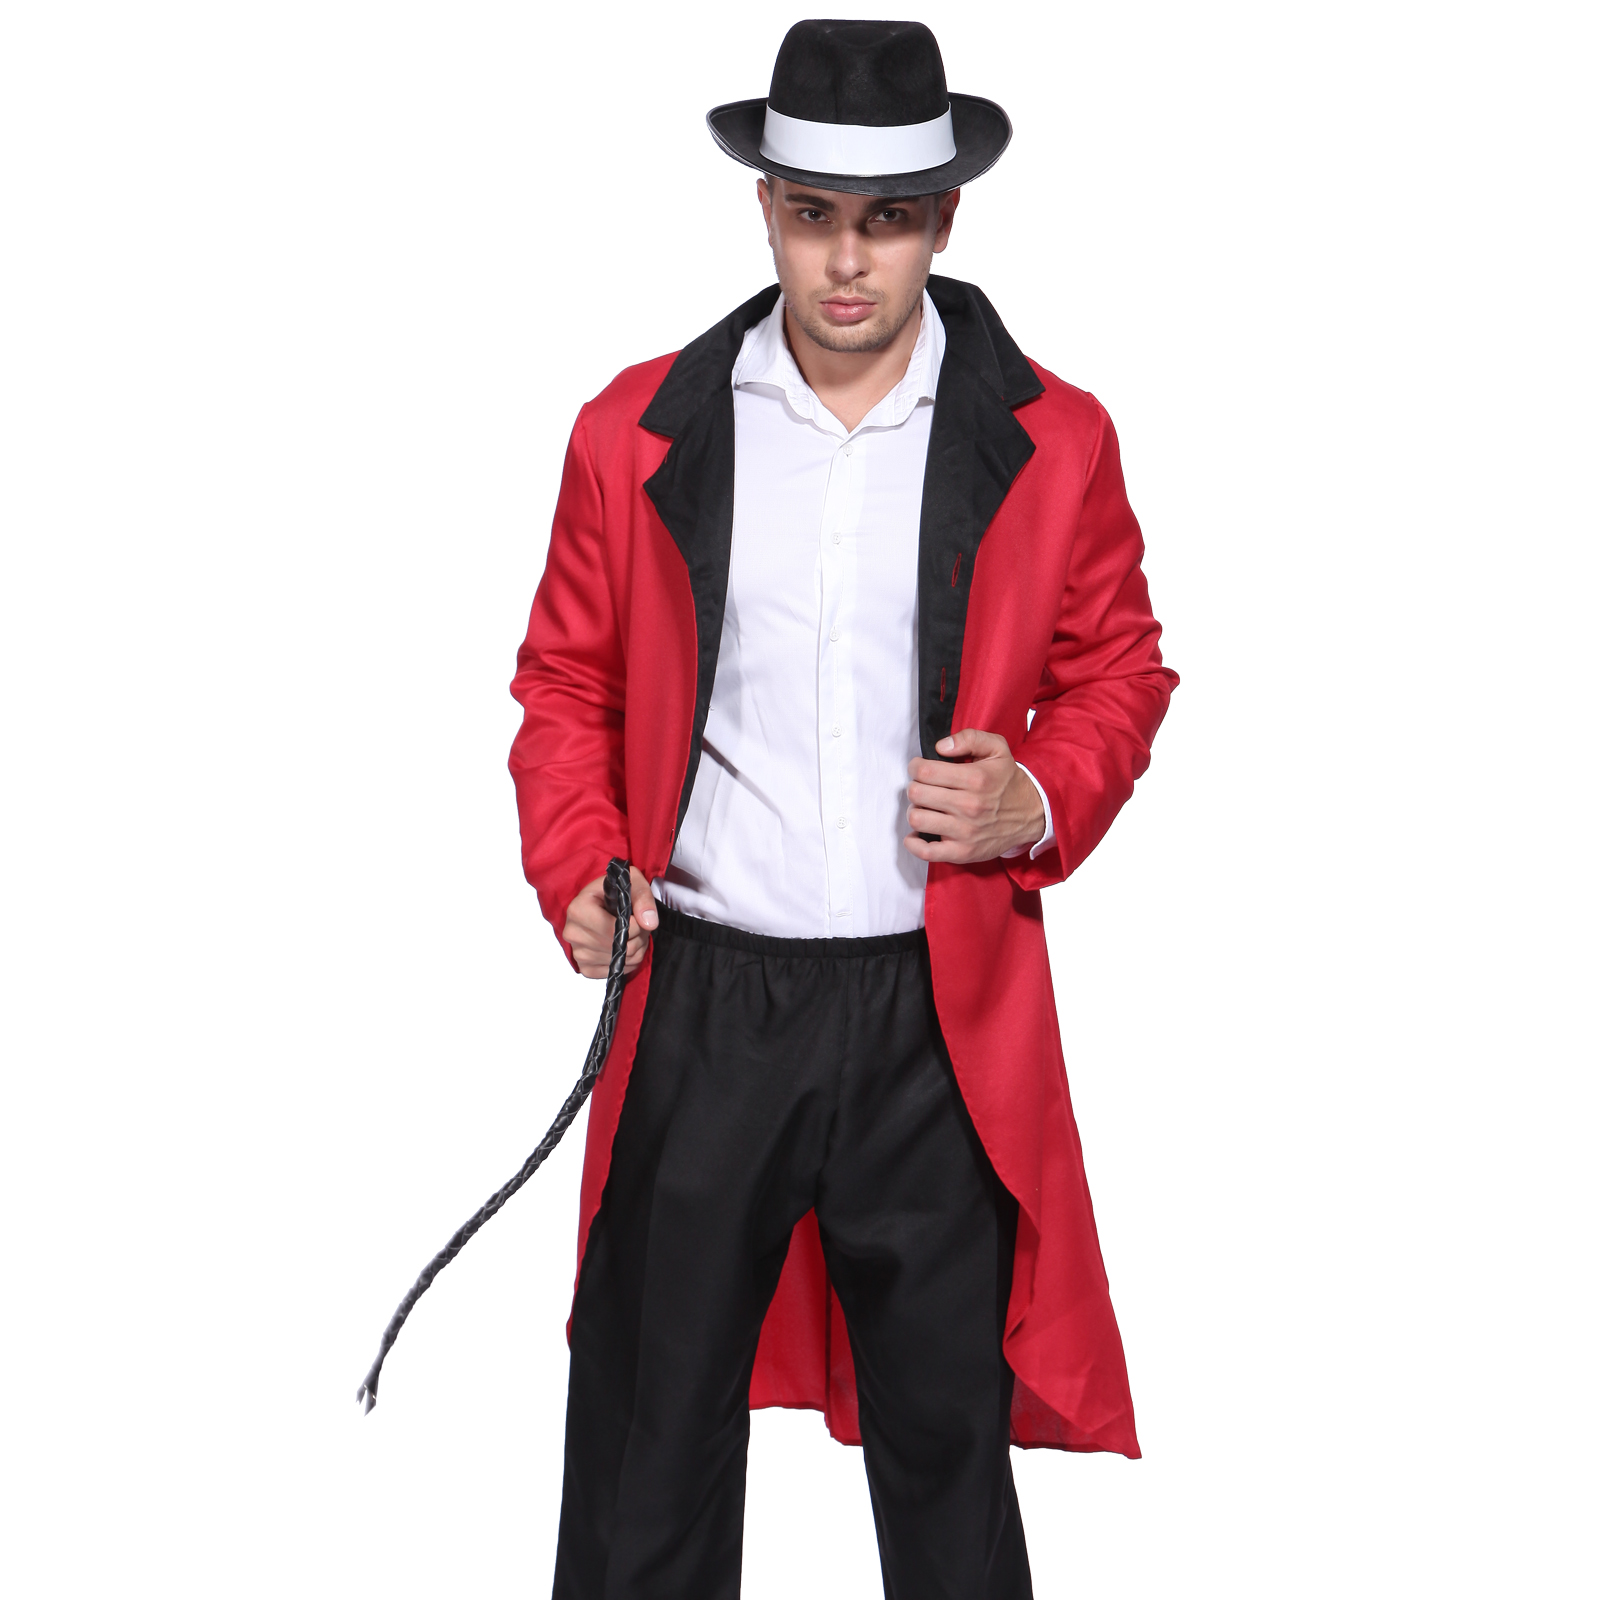 Ladies and gentlemen, boys and girls, children of all ages, get ready for the sassiest costume this Halloween when you walk into the party wearing this Dark Ringmaster Women's Costume! Manage the circus wearing the dress filled with attitude with its flared skirt and sweetheart bodice accented by a /5(6).